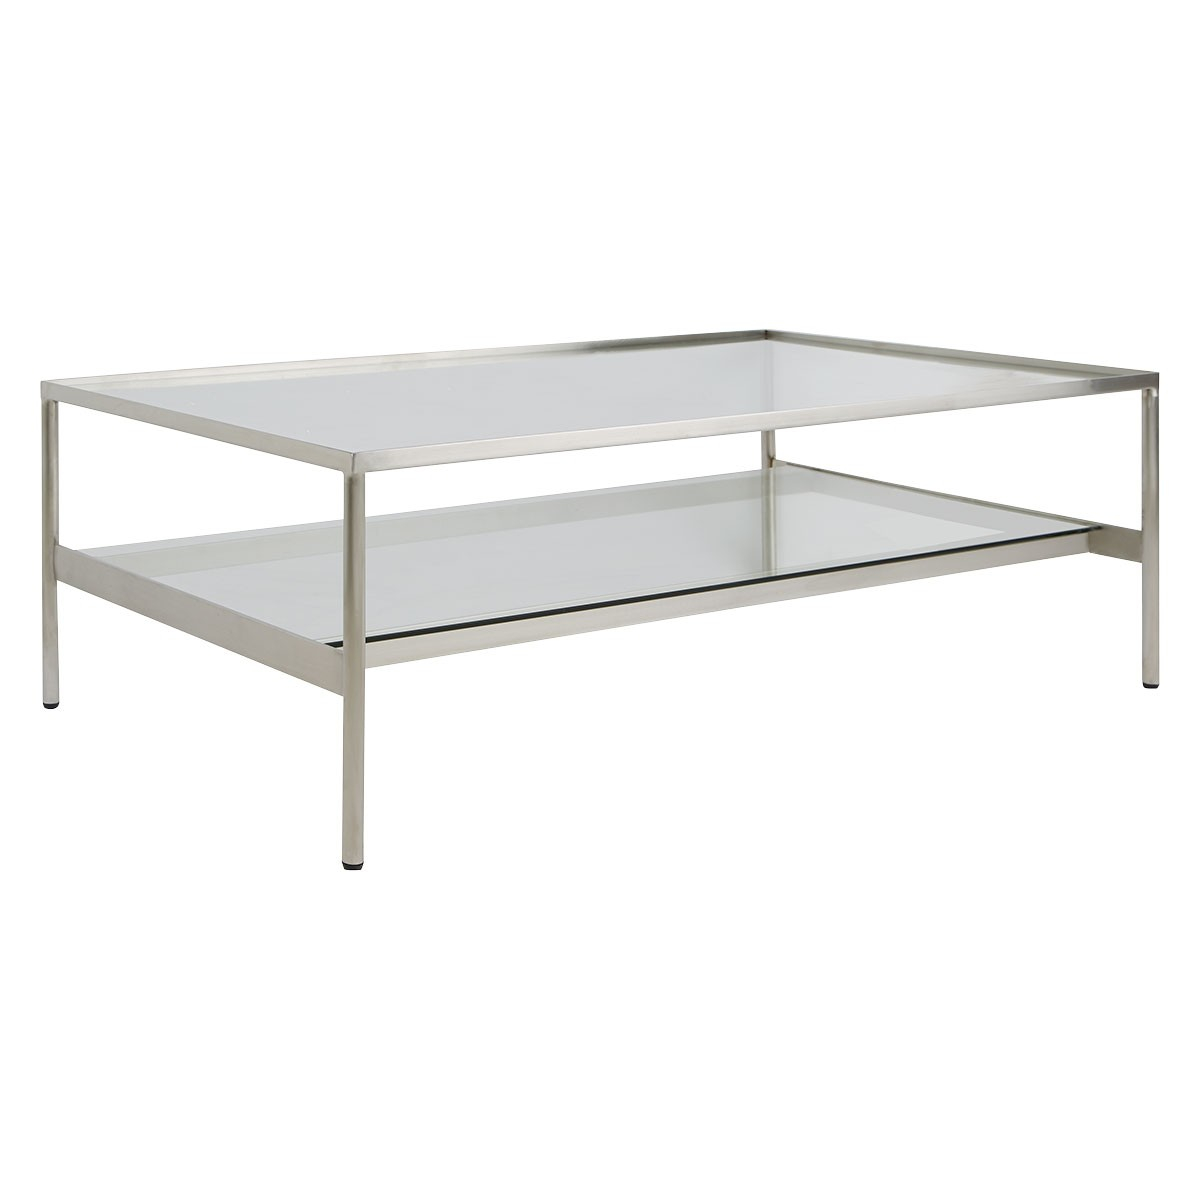 Seattle Chromed Metal And Glass Coffee Table inside proportions 1200 X 1200